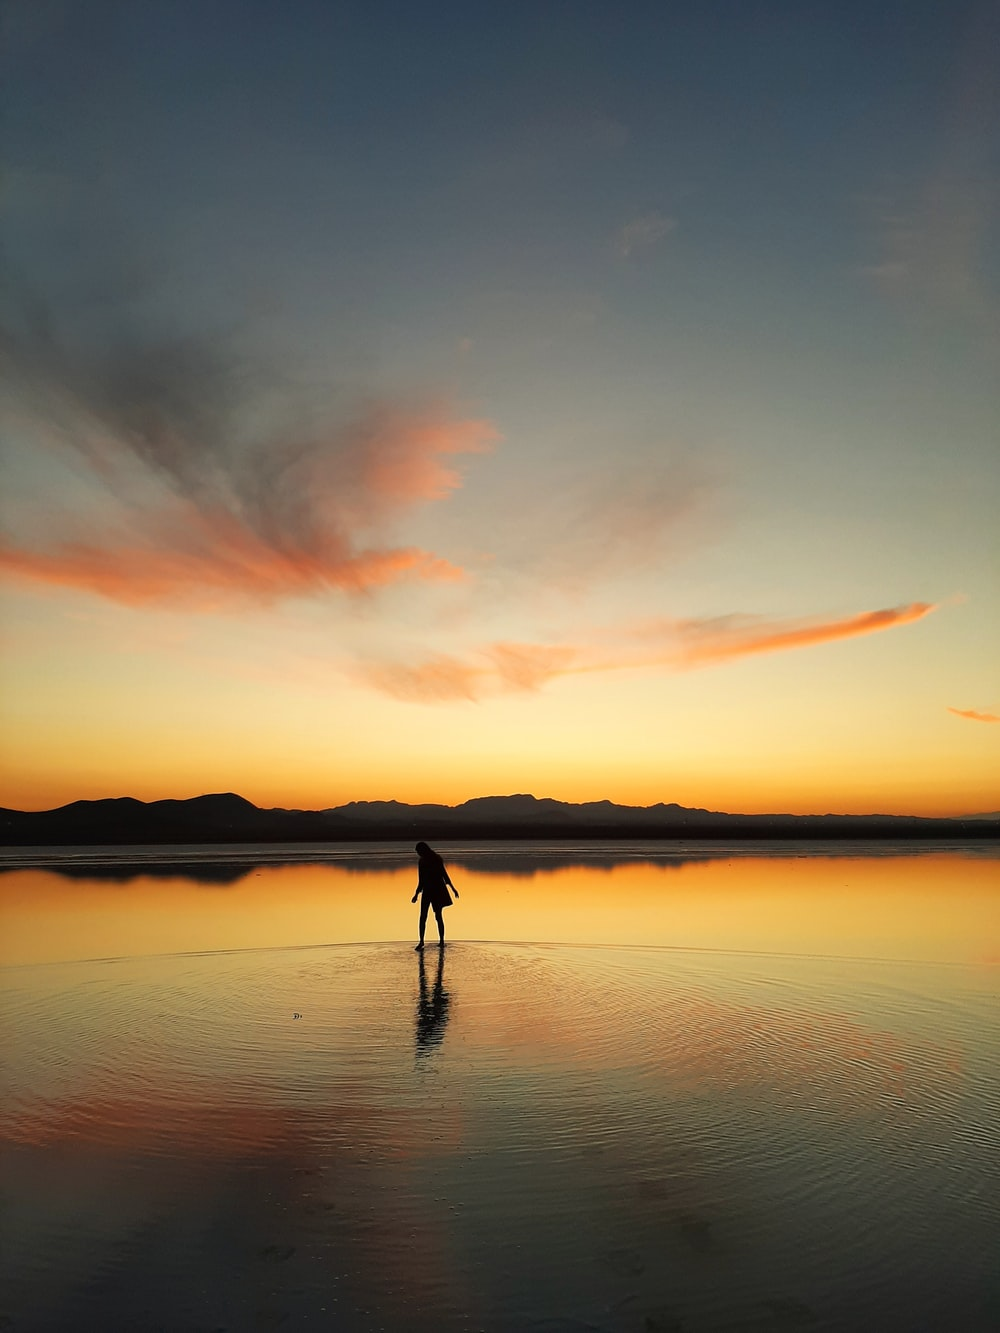 silhouette of 2 person on body of water during sunset